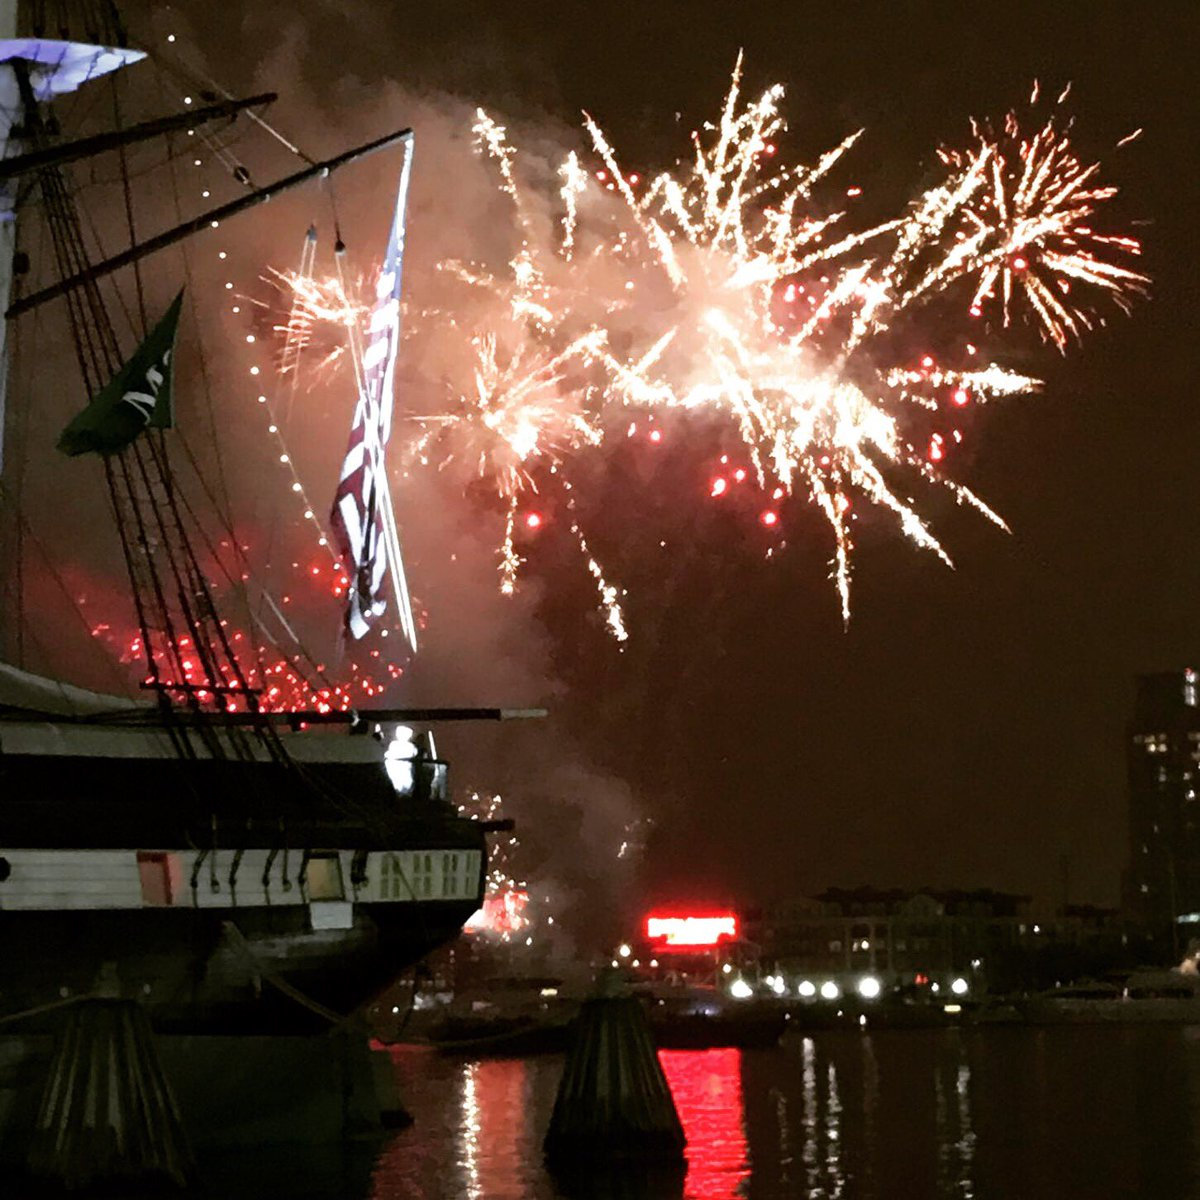 Happy Fourth of July from our city to yours!